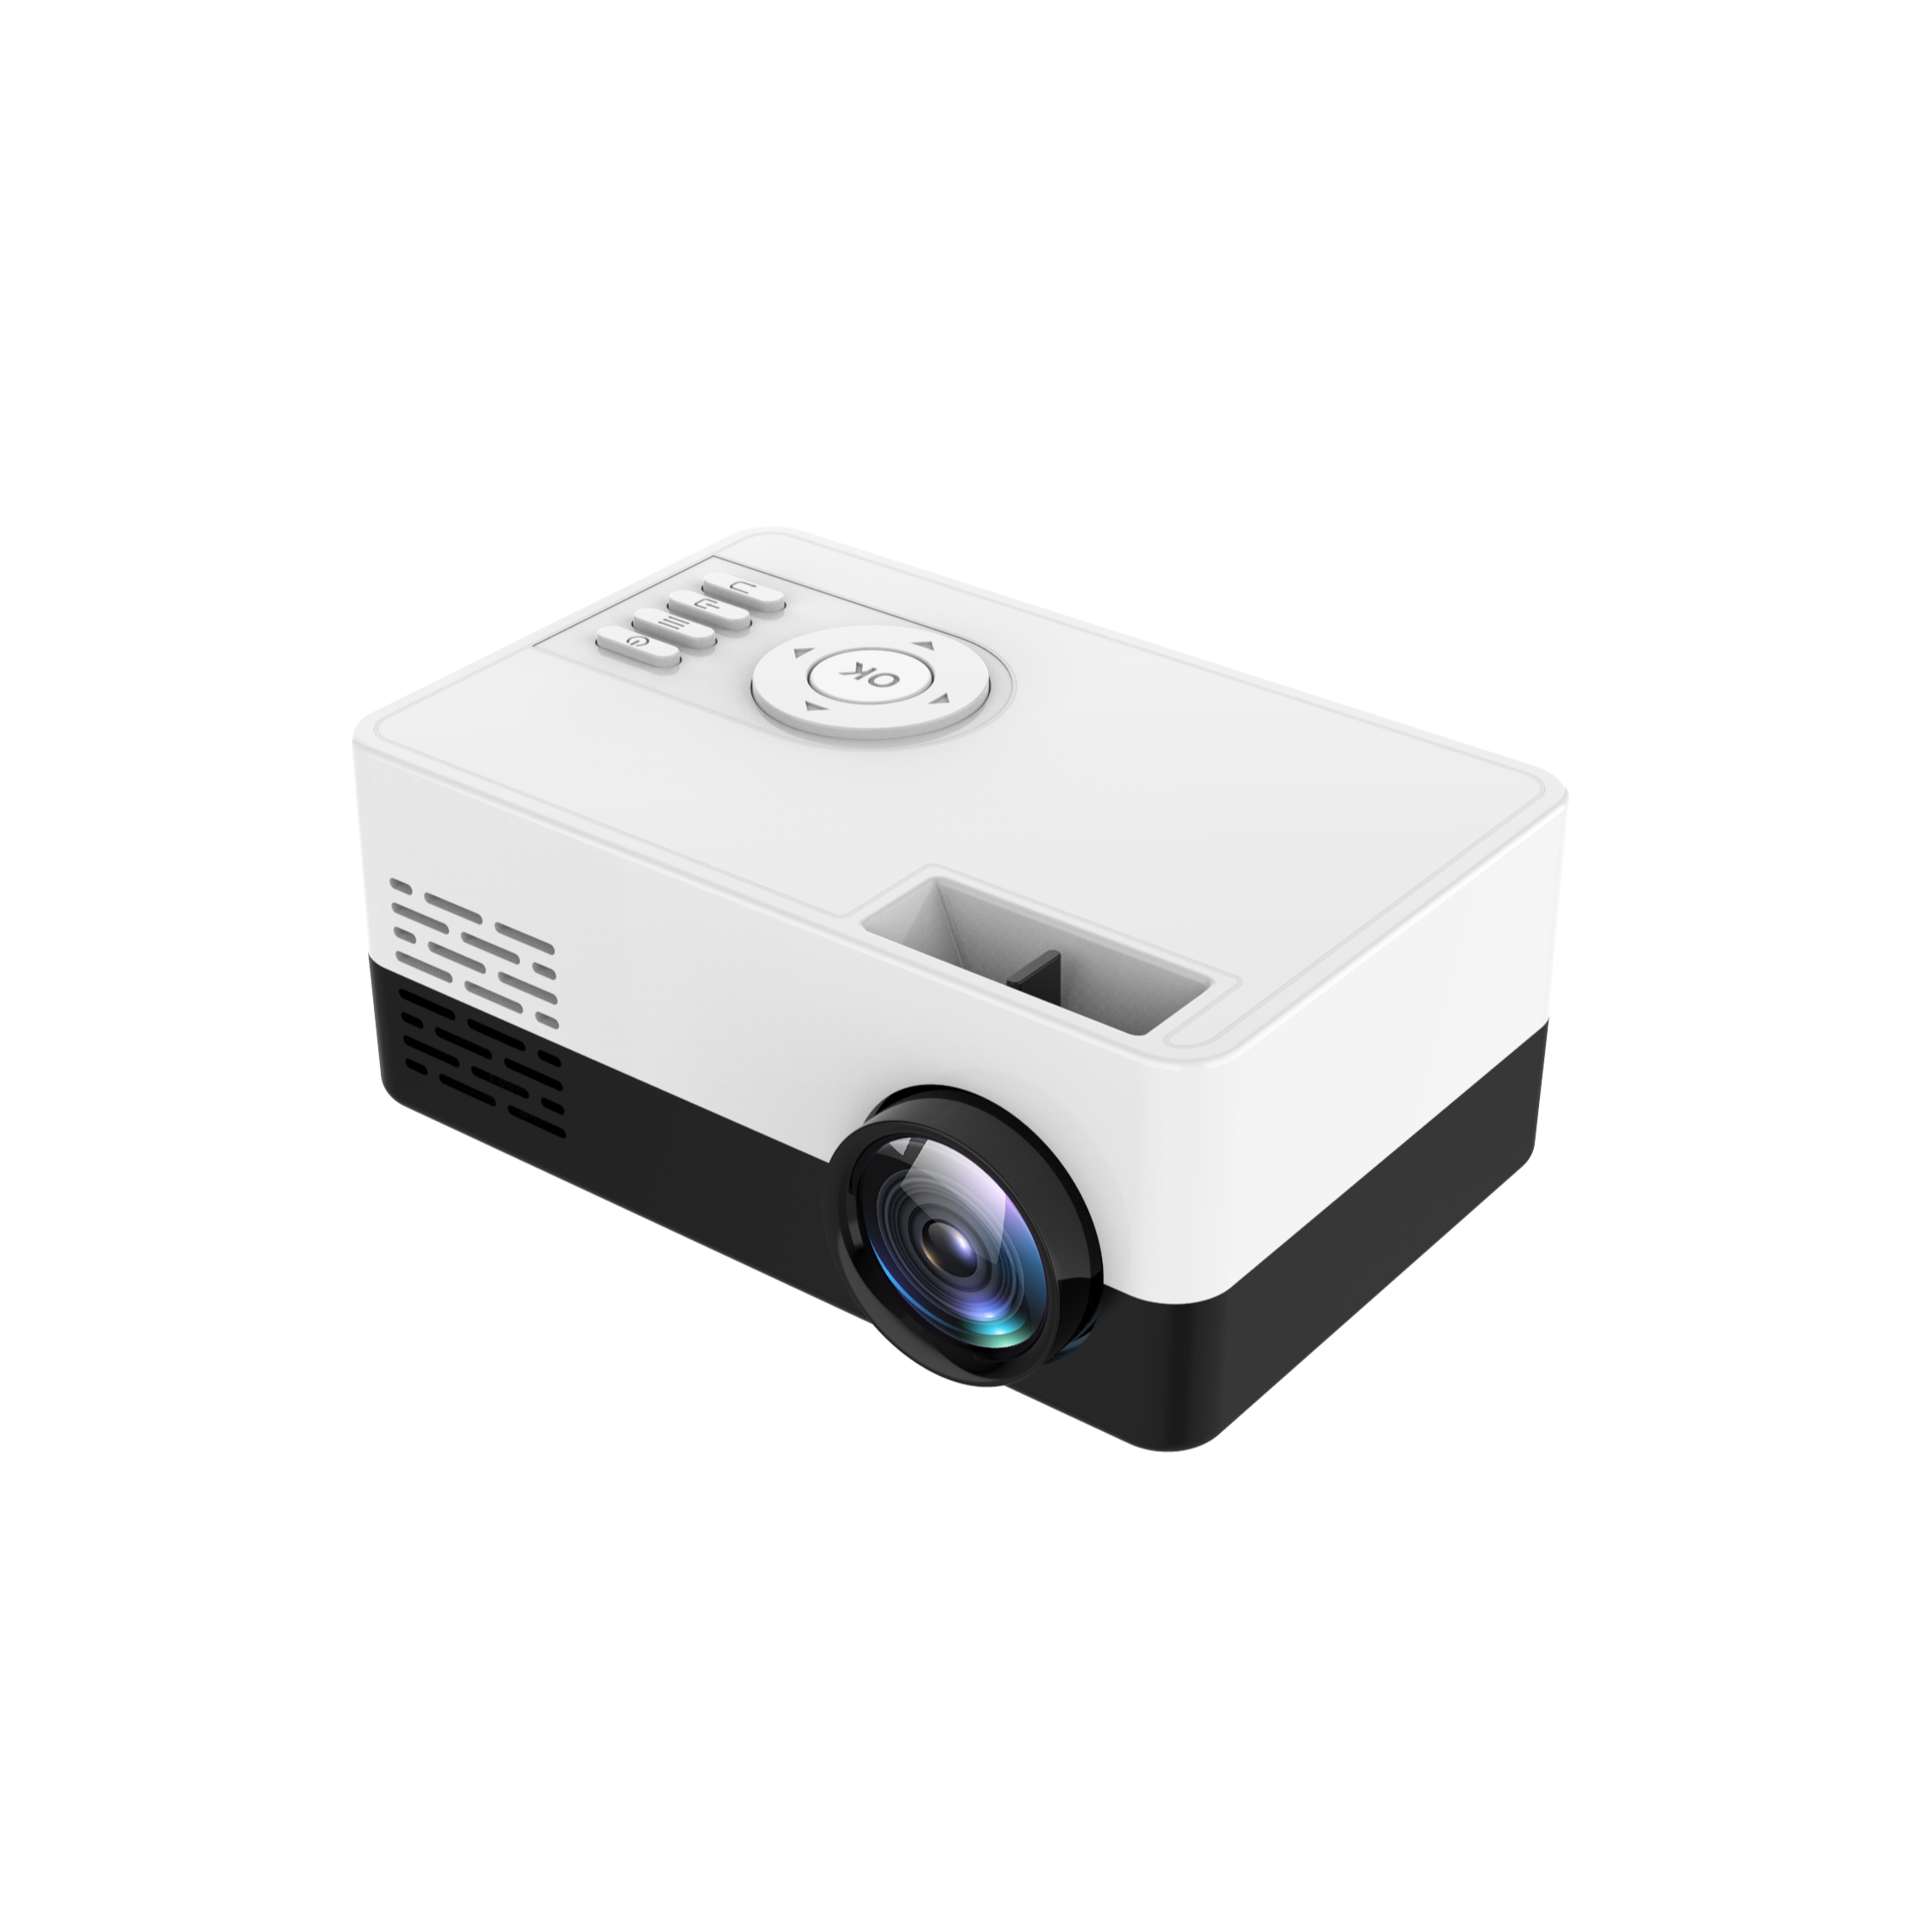 2020 smart mini LED J15 <strong>Projector</strong> portable home pocket cinema video <strong>projector</strong> J15